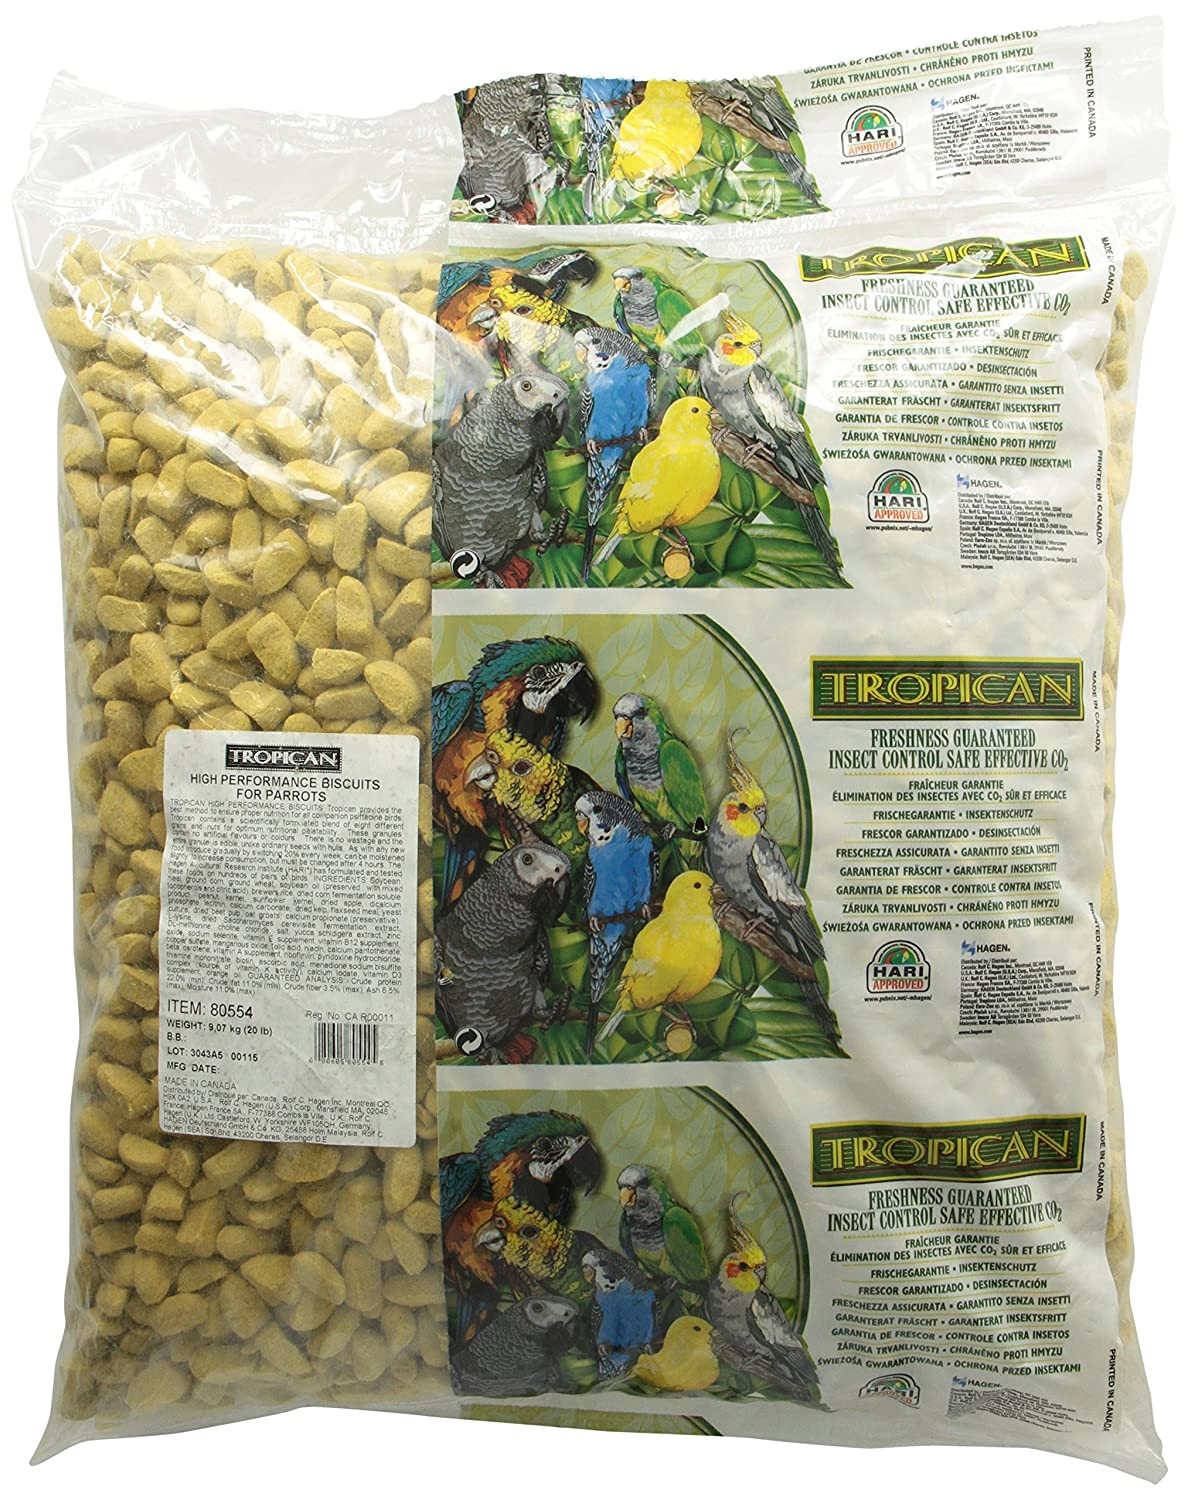 Tropican High Performance Parrot Biscuits, 20-Pound 80554